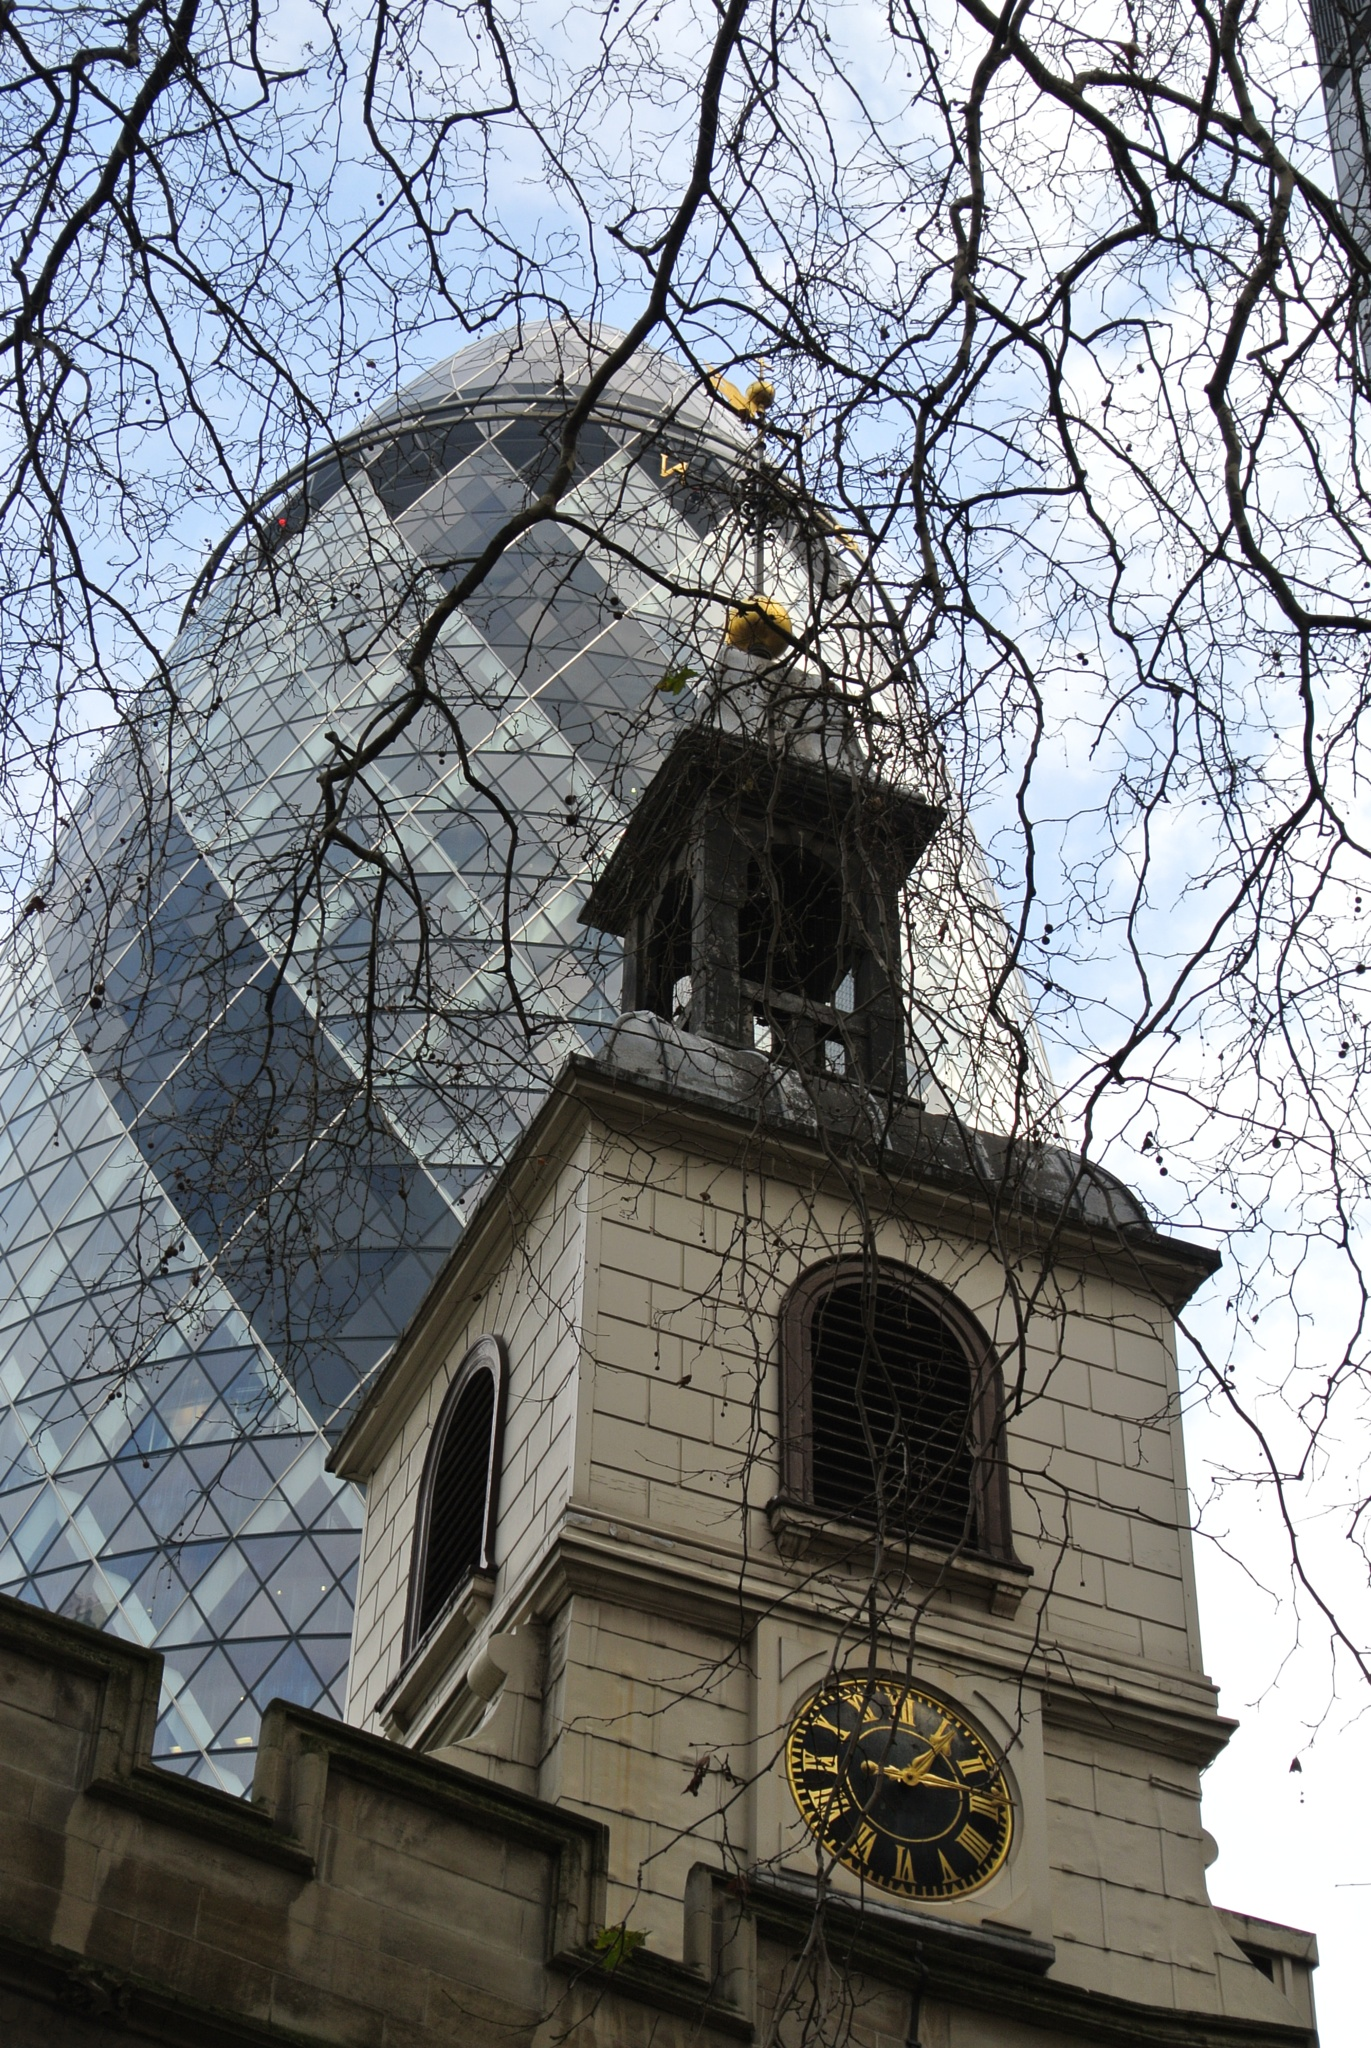 The Gerkin and the Church  by Debra Kurs